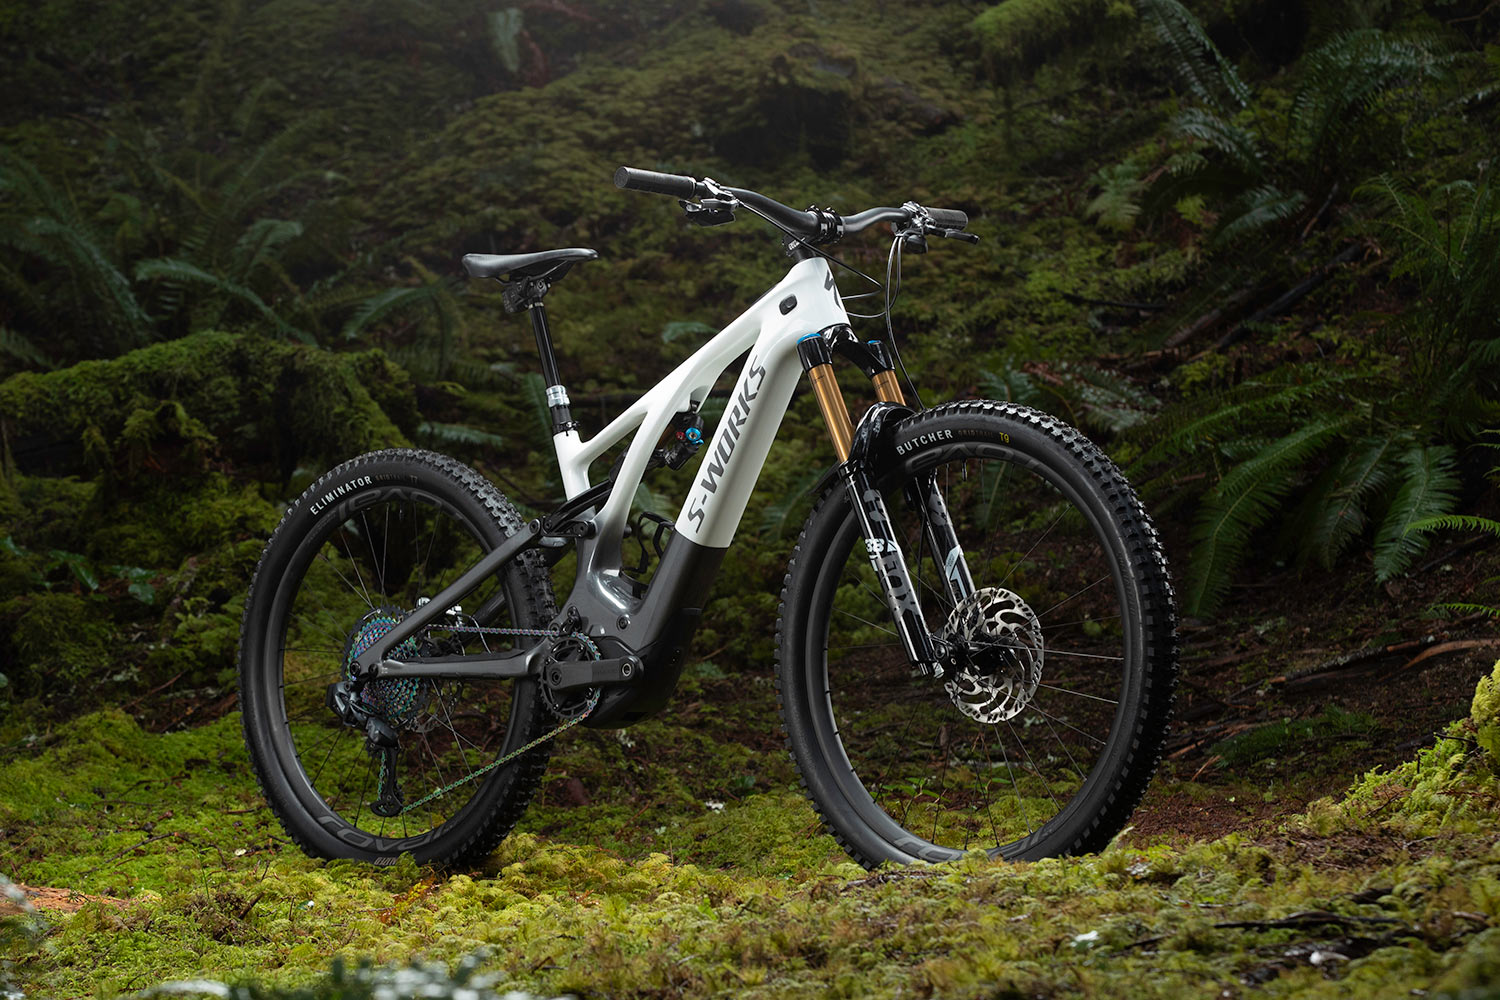 2021 specialized turbo levo third generation eMTB shown in the forest